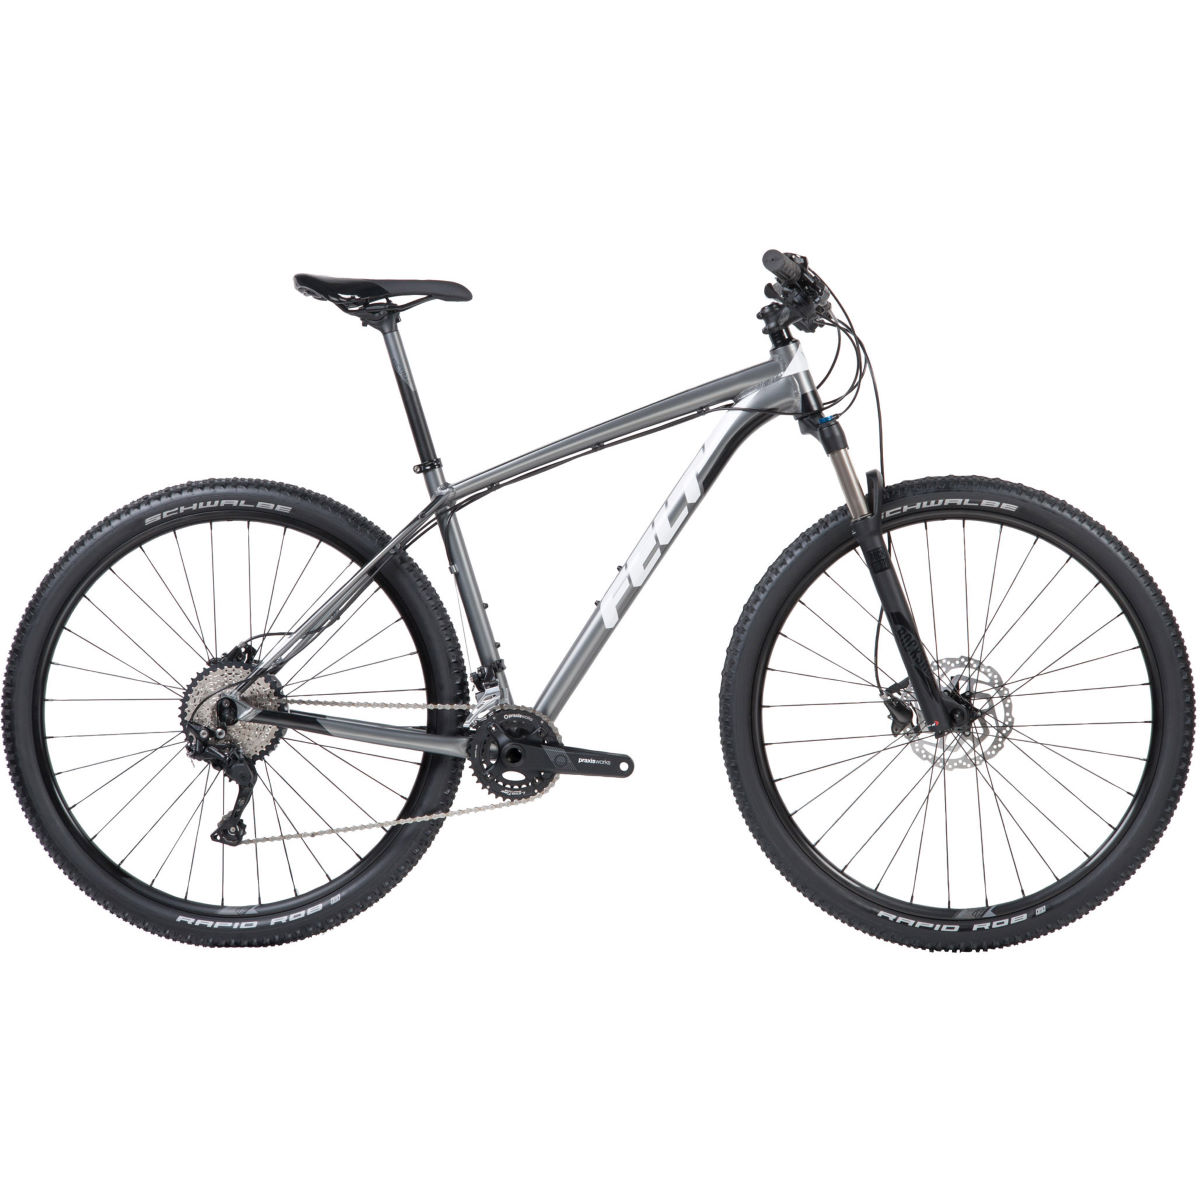 VTT semi-rigide Felt Dispatch 9/50 XC (2018) - 16'' Stock Bike